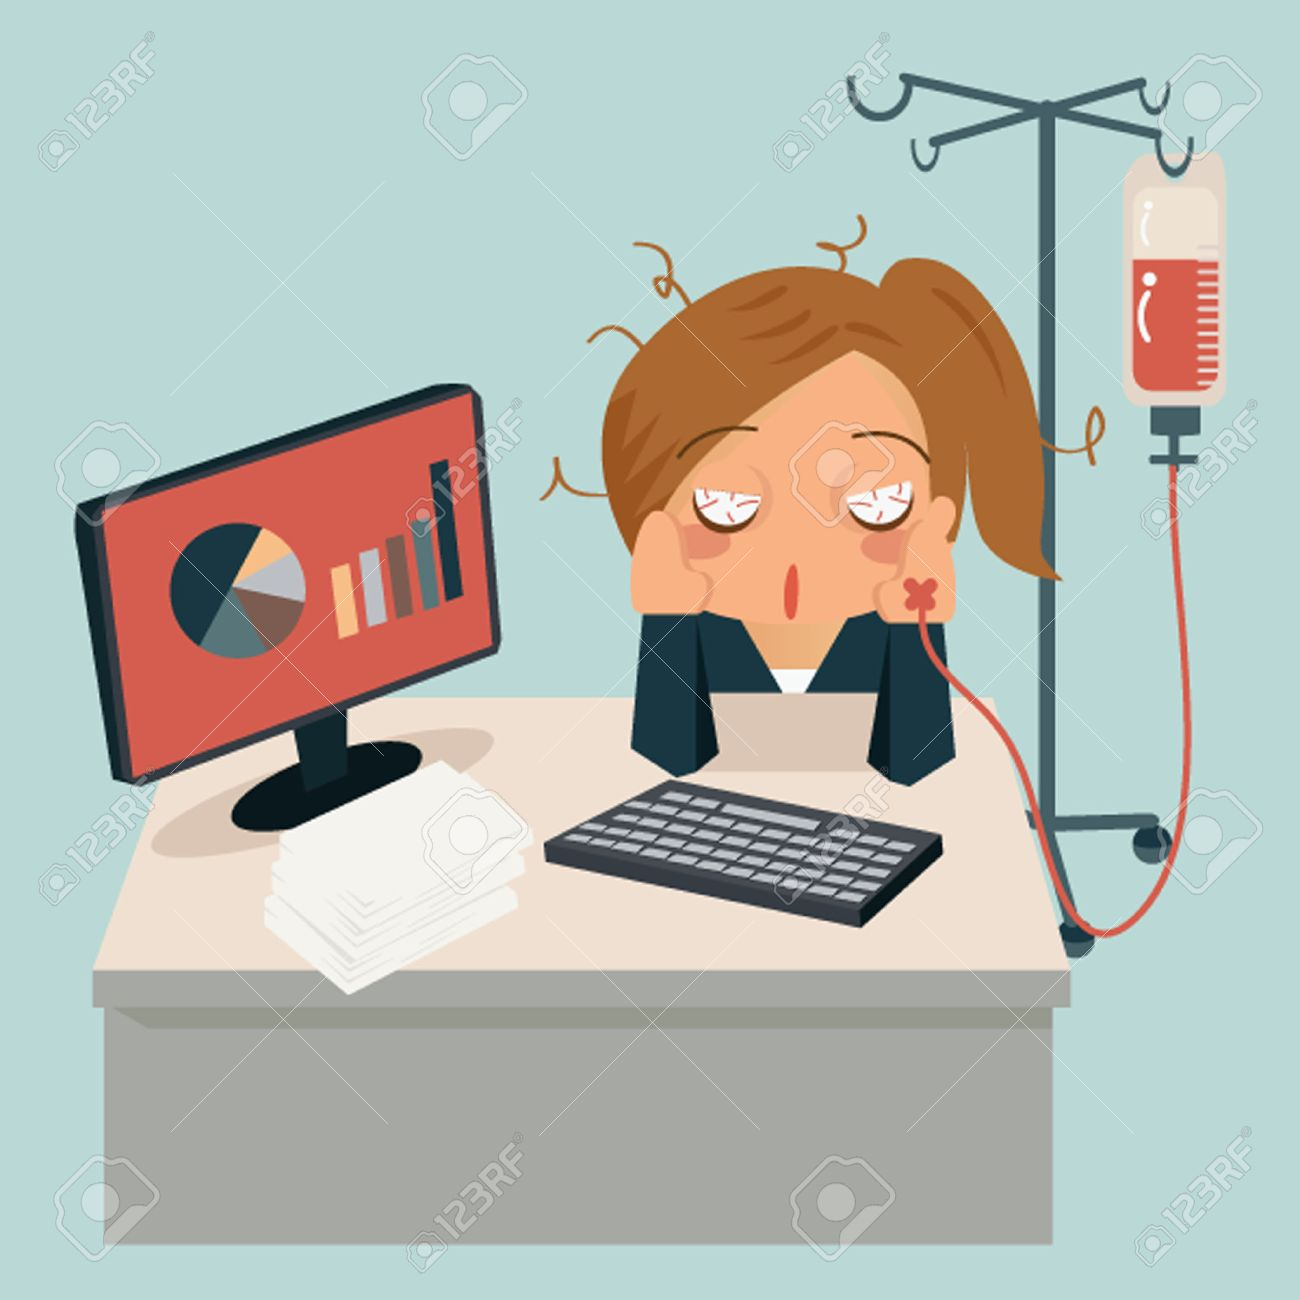 Businesswoman sitting in office, looking tired and her hand attaching intravenous tube to medicine dropper Stock Vector - 27718651